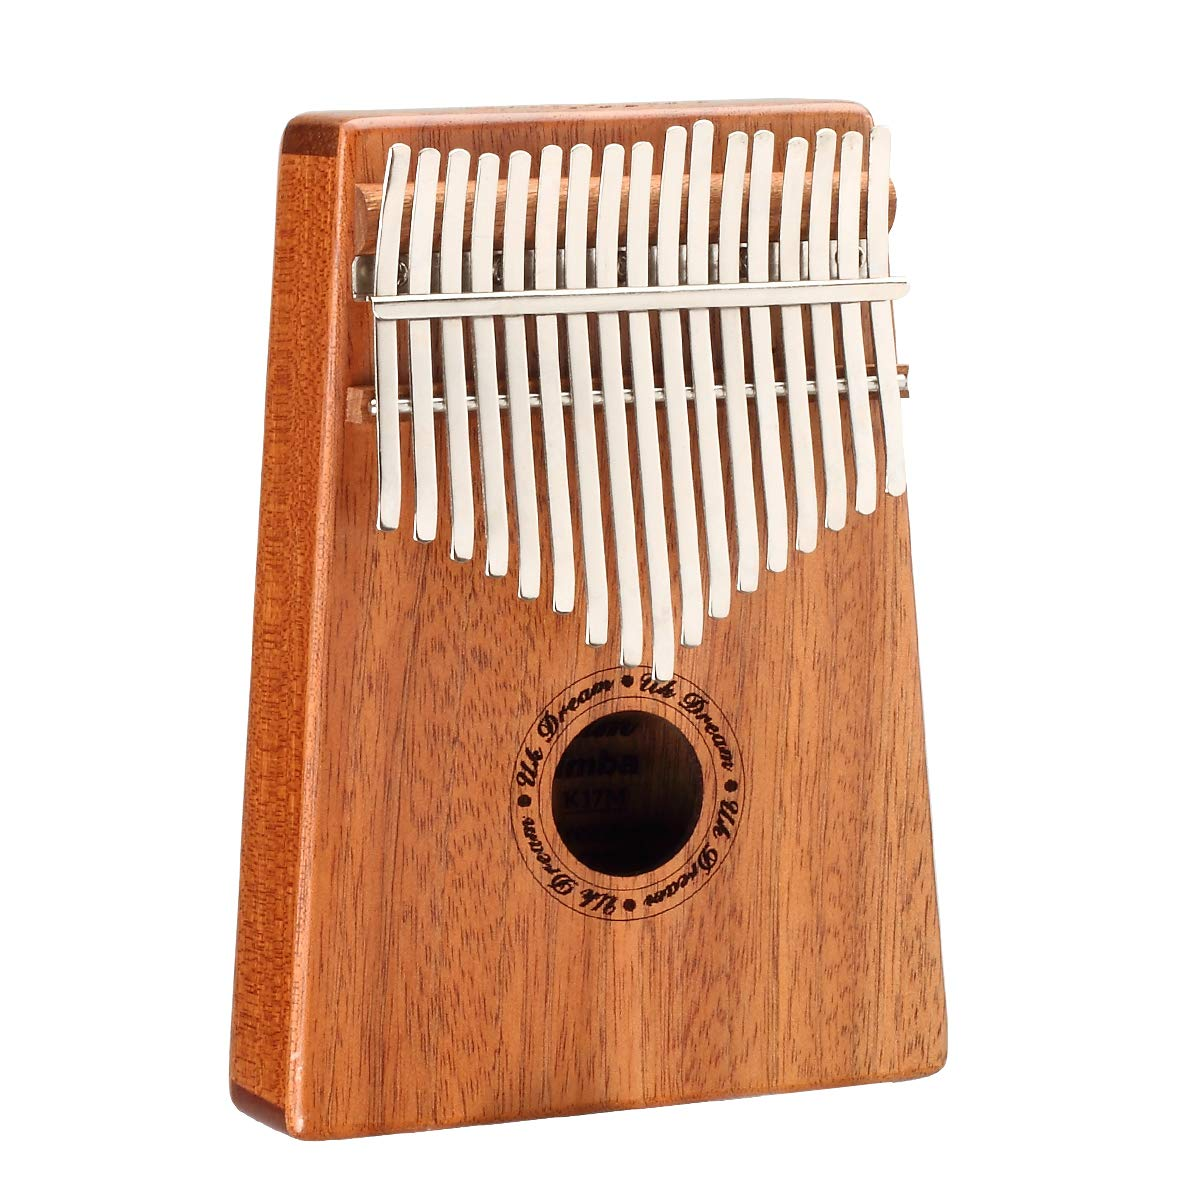 UK Dream Hot 10 Keys Kalimba Mbira Ten-tone Piano Sanza Likembe Thumb Piano Fun Gift Traditional African Music Instrucments (10 Key) changyun K10